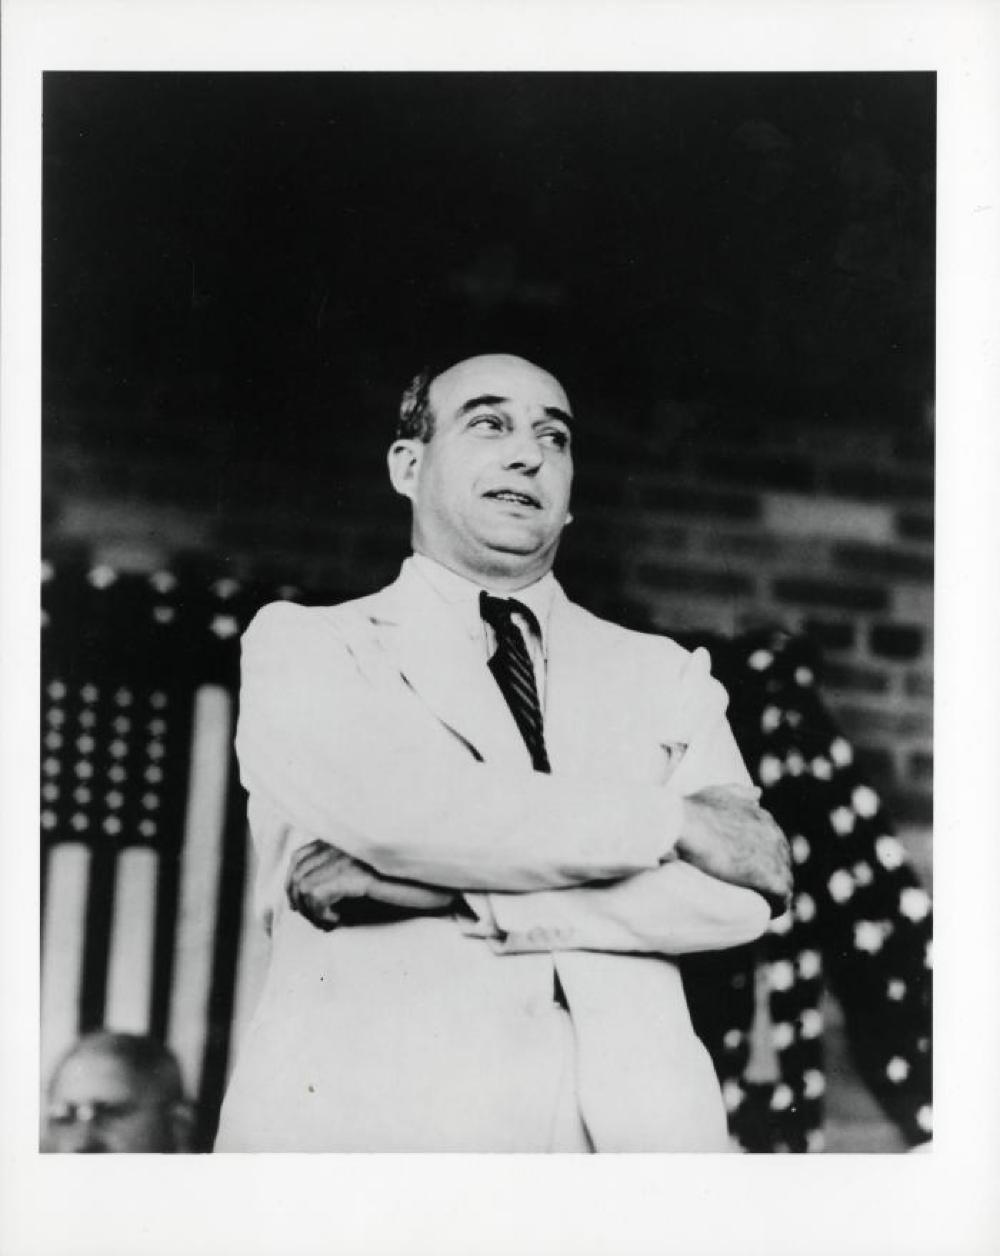 Robert Moses at the dedication of the McWhinney plaque